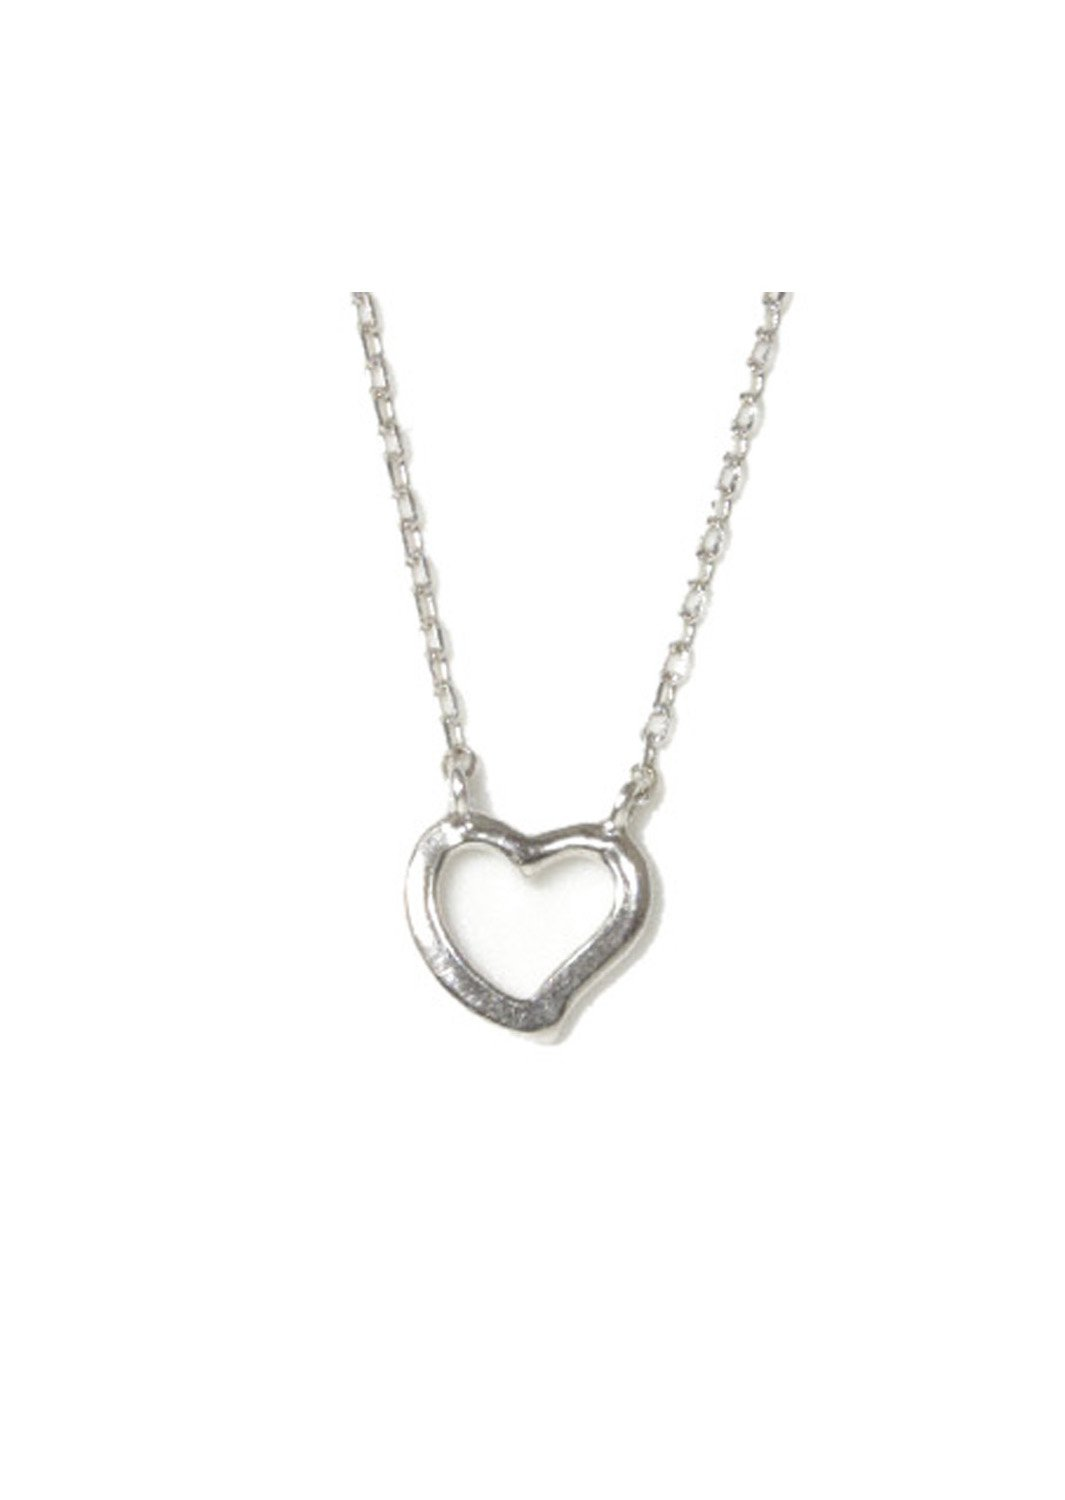 Heart pendant silver necklace